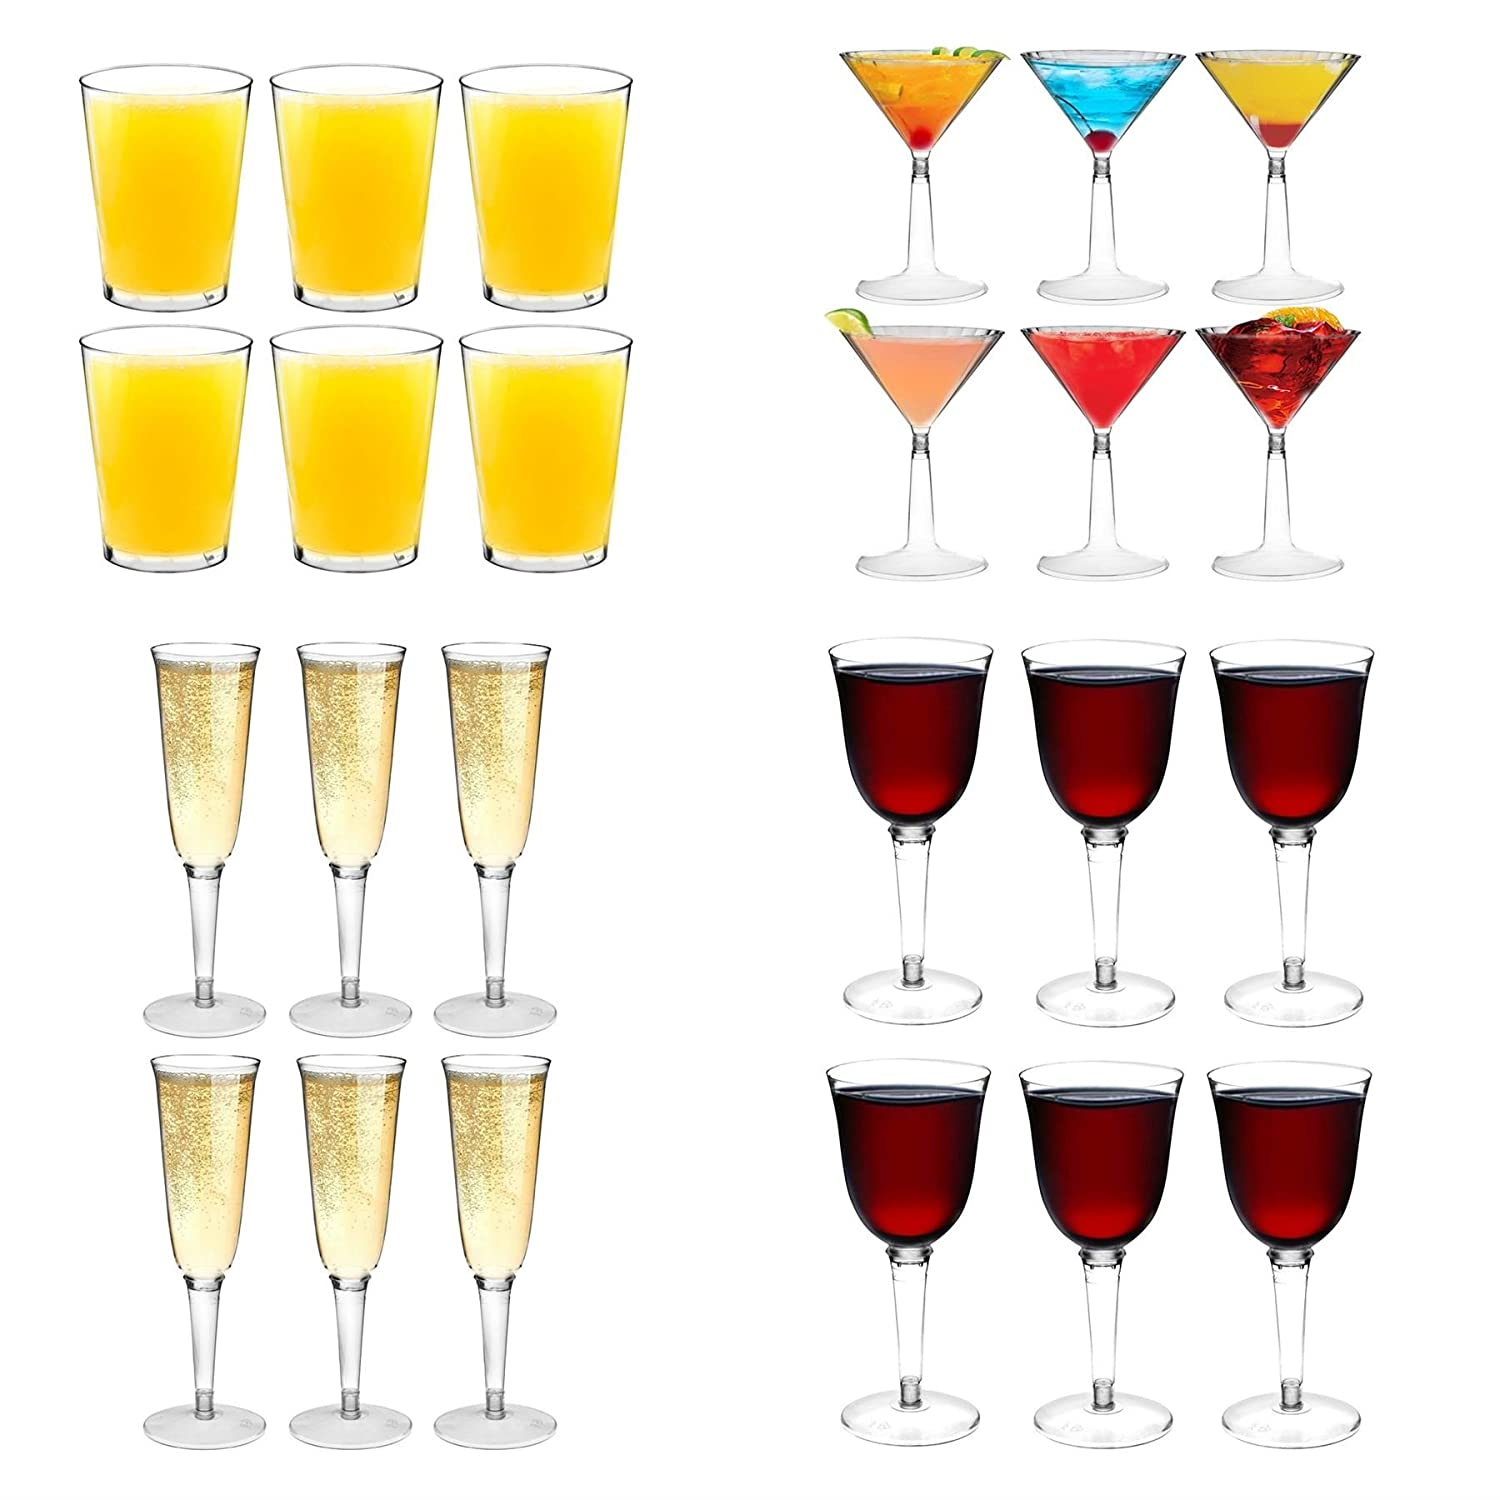 Plastic Outdoor Water Tumblers / Hiballs, Wine Glasses, Champagne Flutes and Martini cocktail glasses - Set Of 24 Rink Drink